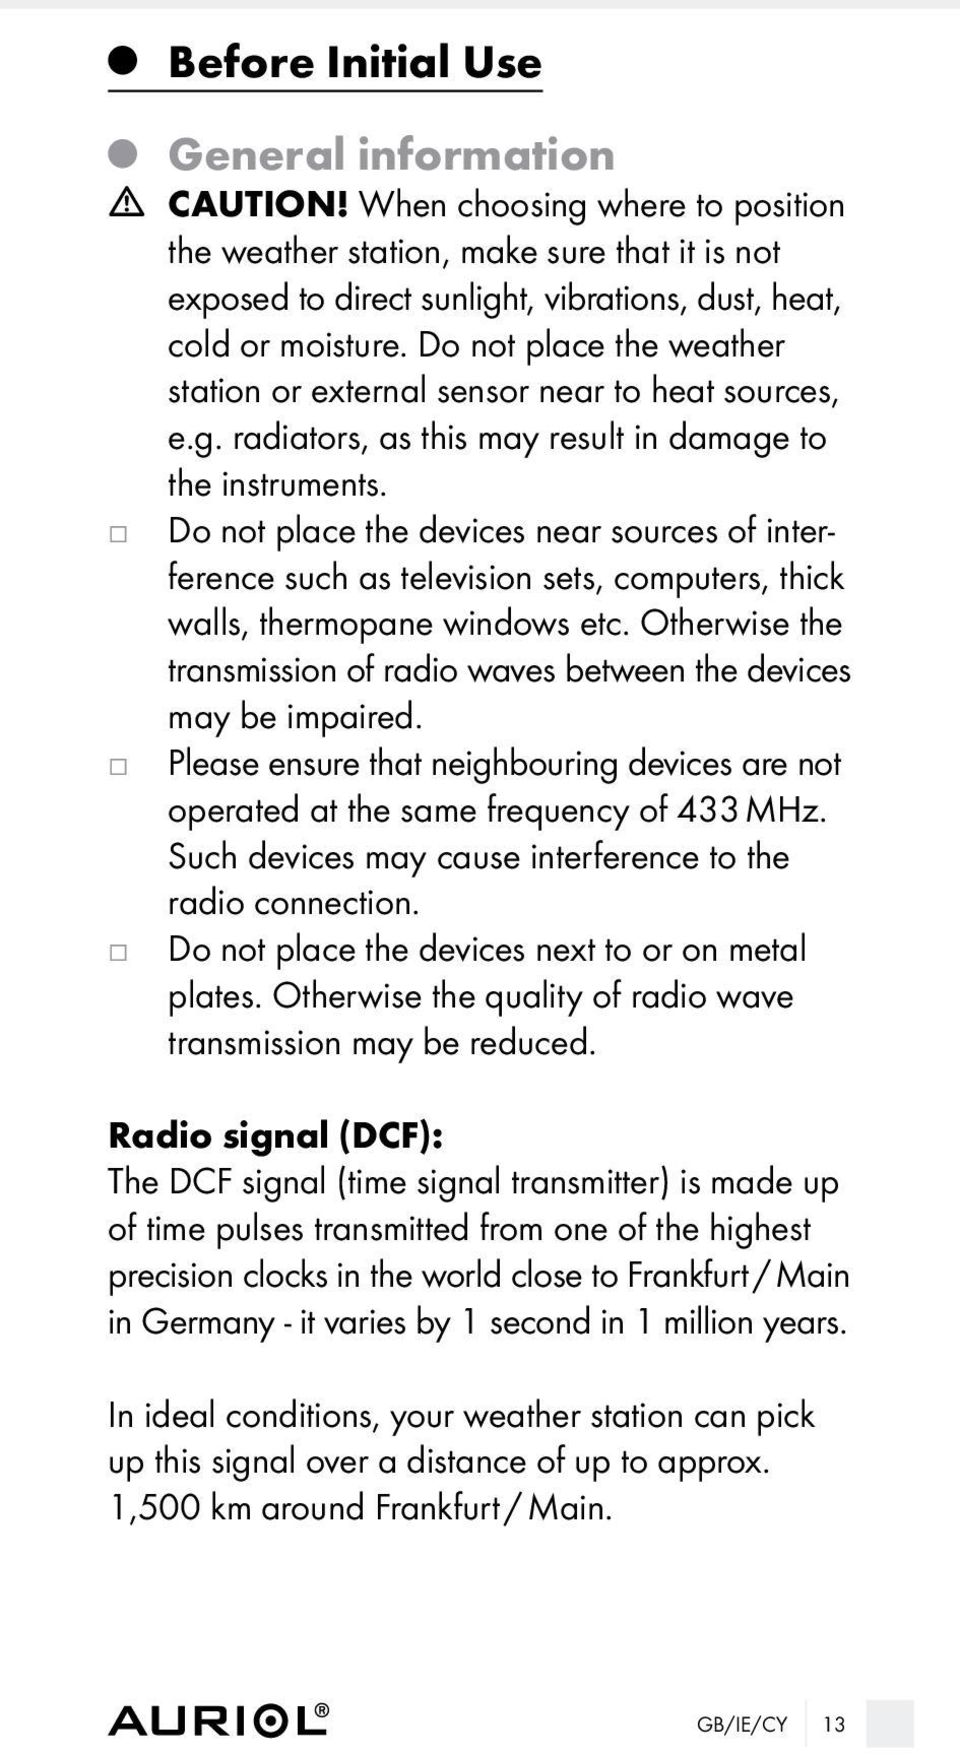 Do not place the devices near sources of interference such as television sets, computers, thick walls, thermopane windows etc.